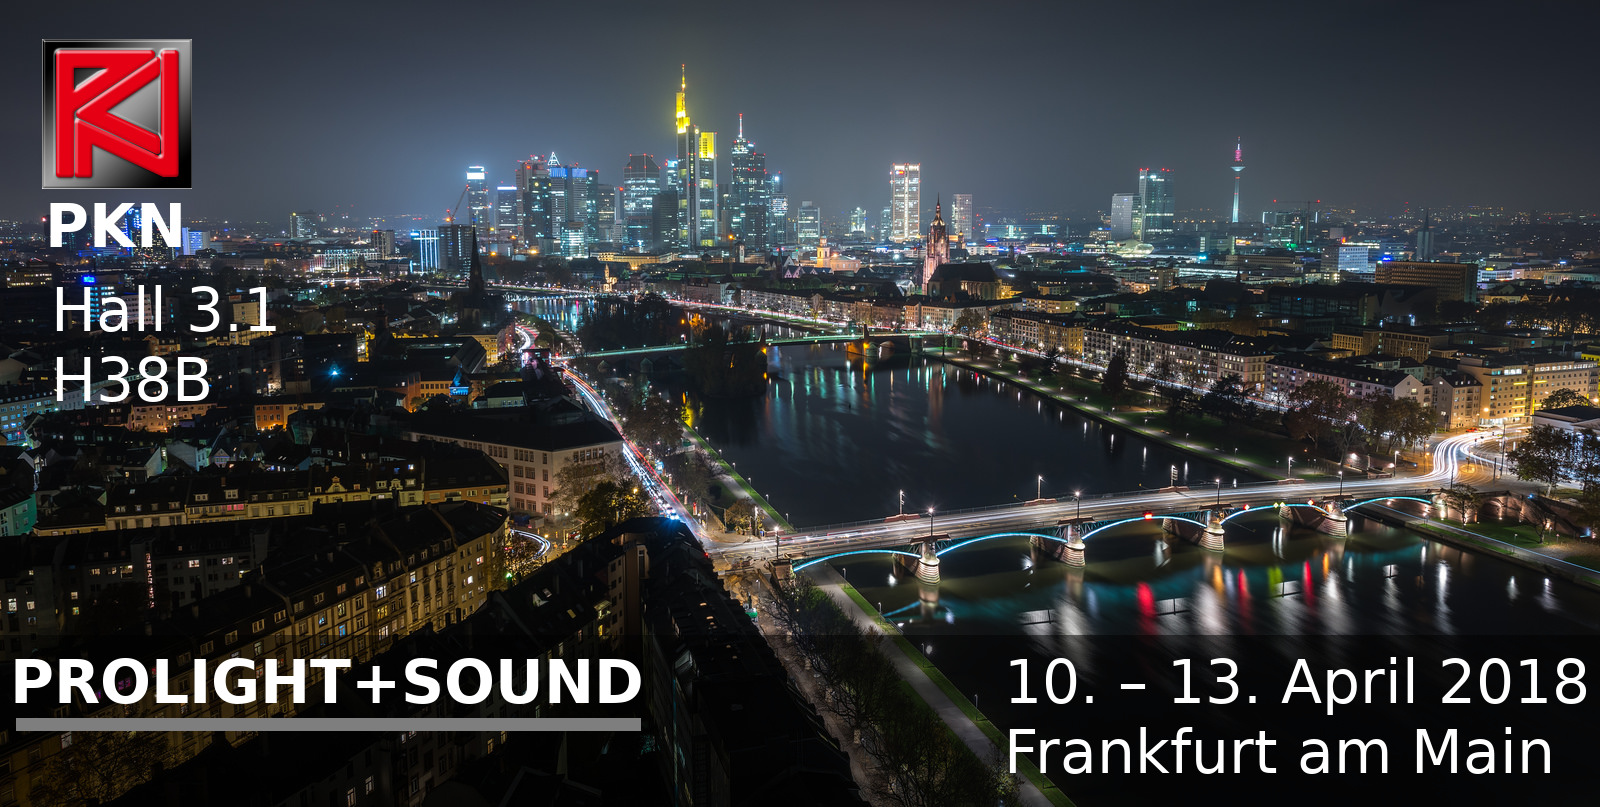 PROLIGHT+SOUND 2018 Messe Frankfurt